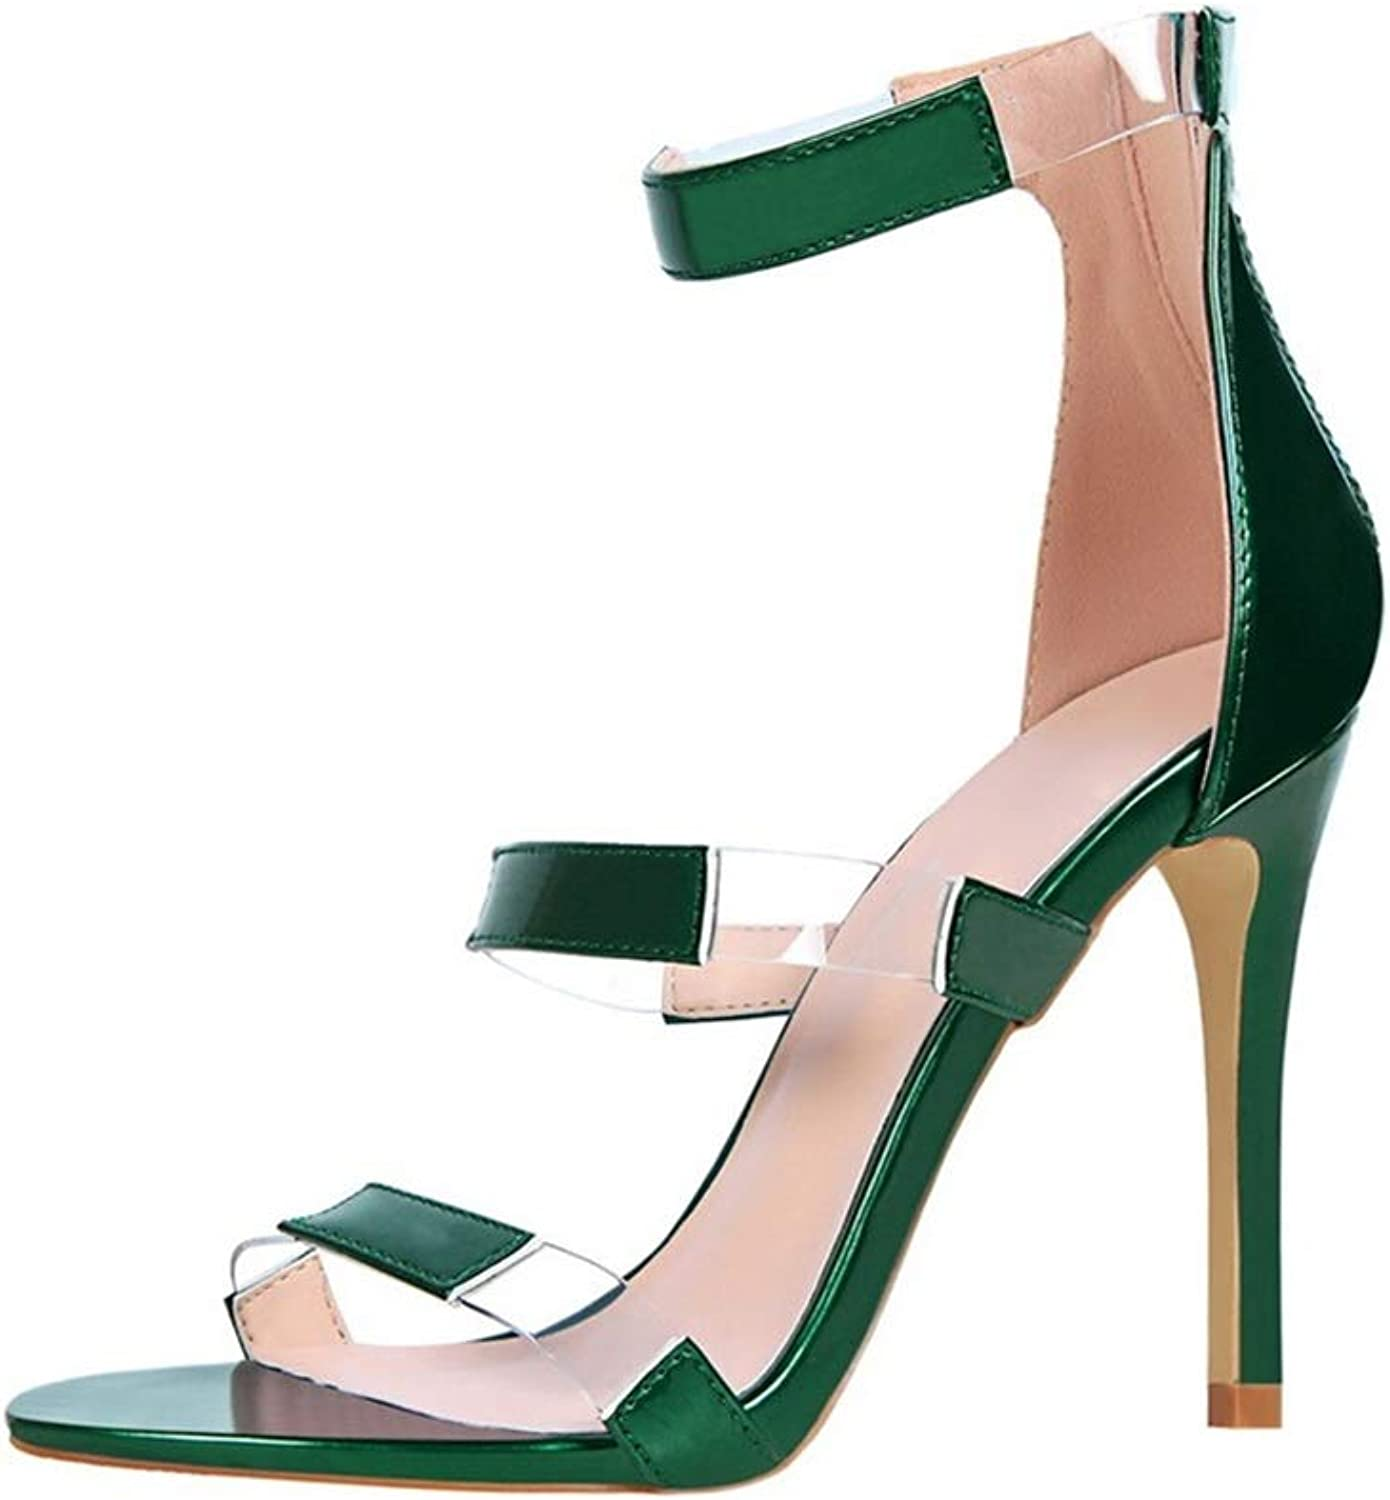 Sandals, Slim High Heels Superfine Heel Sexy Nightclub Hollow Party Party shoes Green 10cm (color   Green, Size   35)